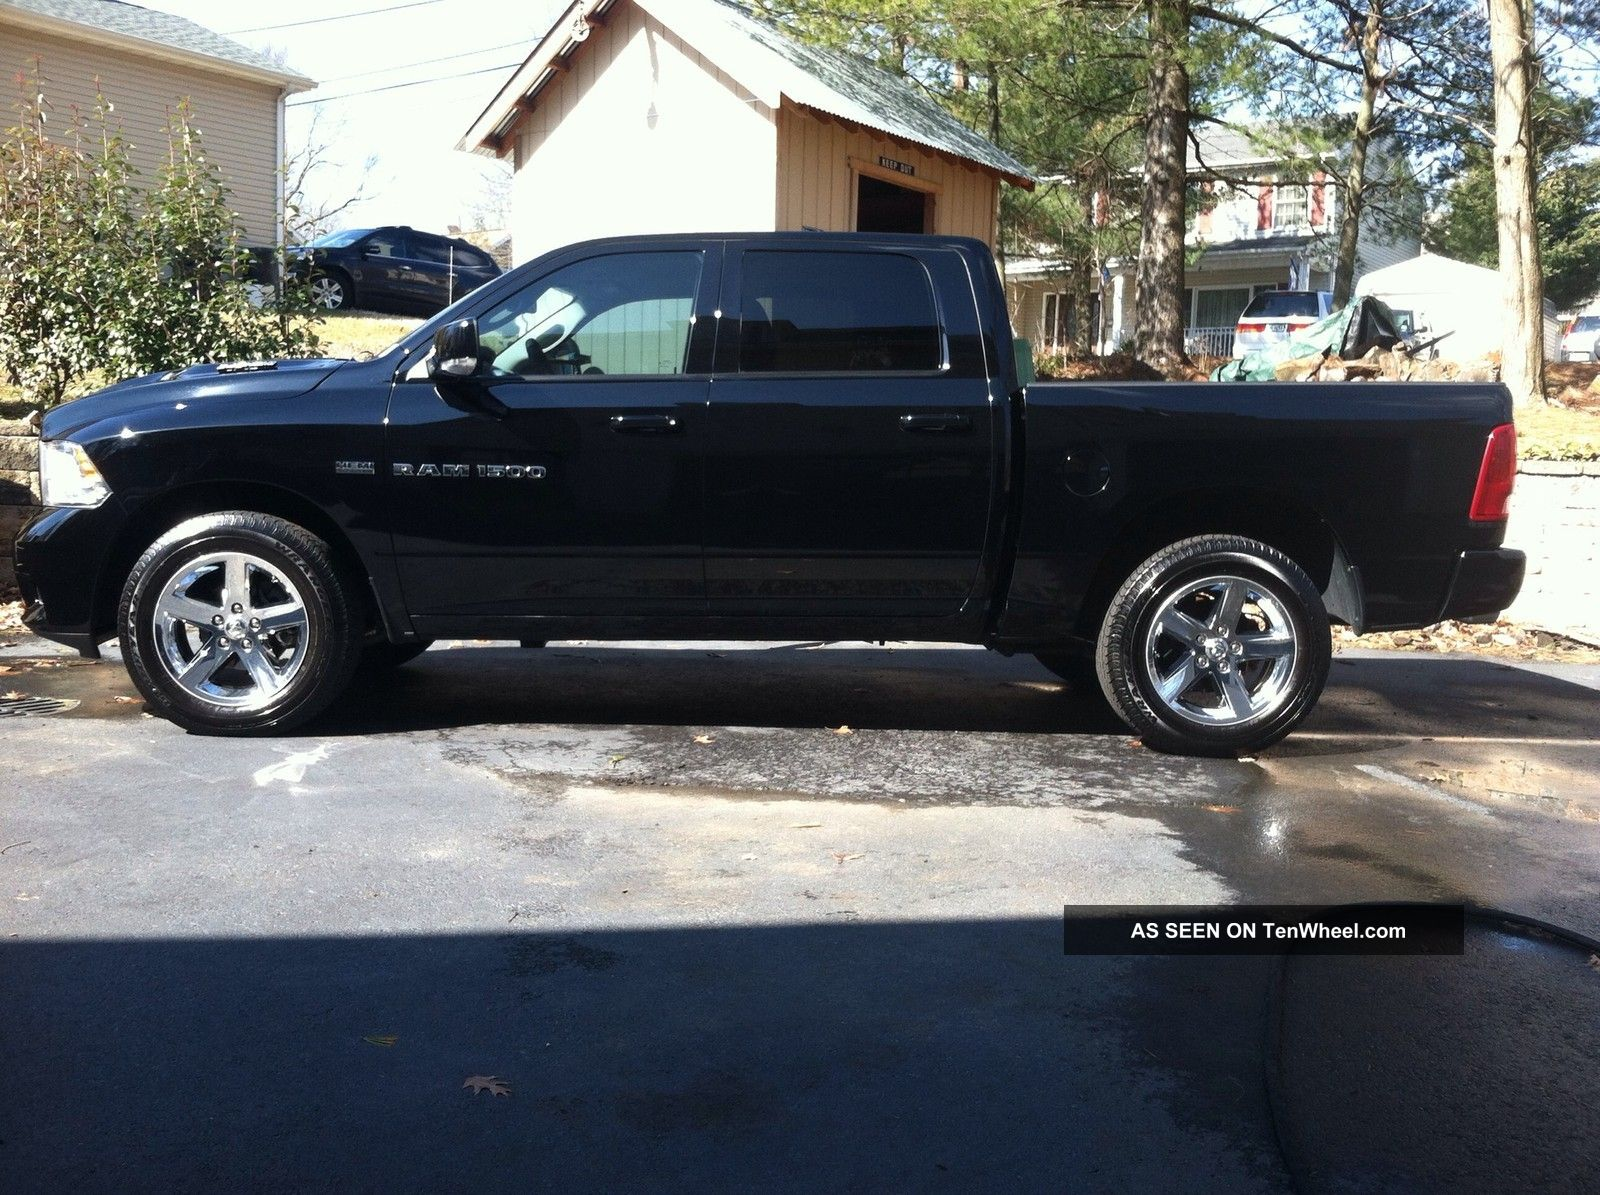 2012 dodge ram 1500 ram 1500 photo 9. Black Bedroom Furniture Sets. Home Design Ideas